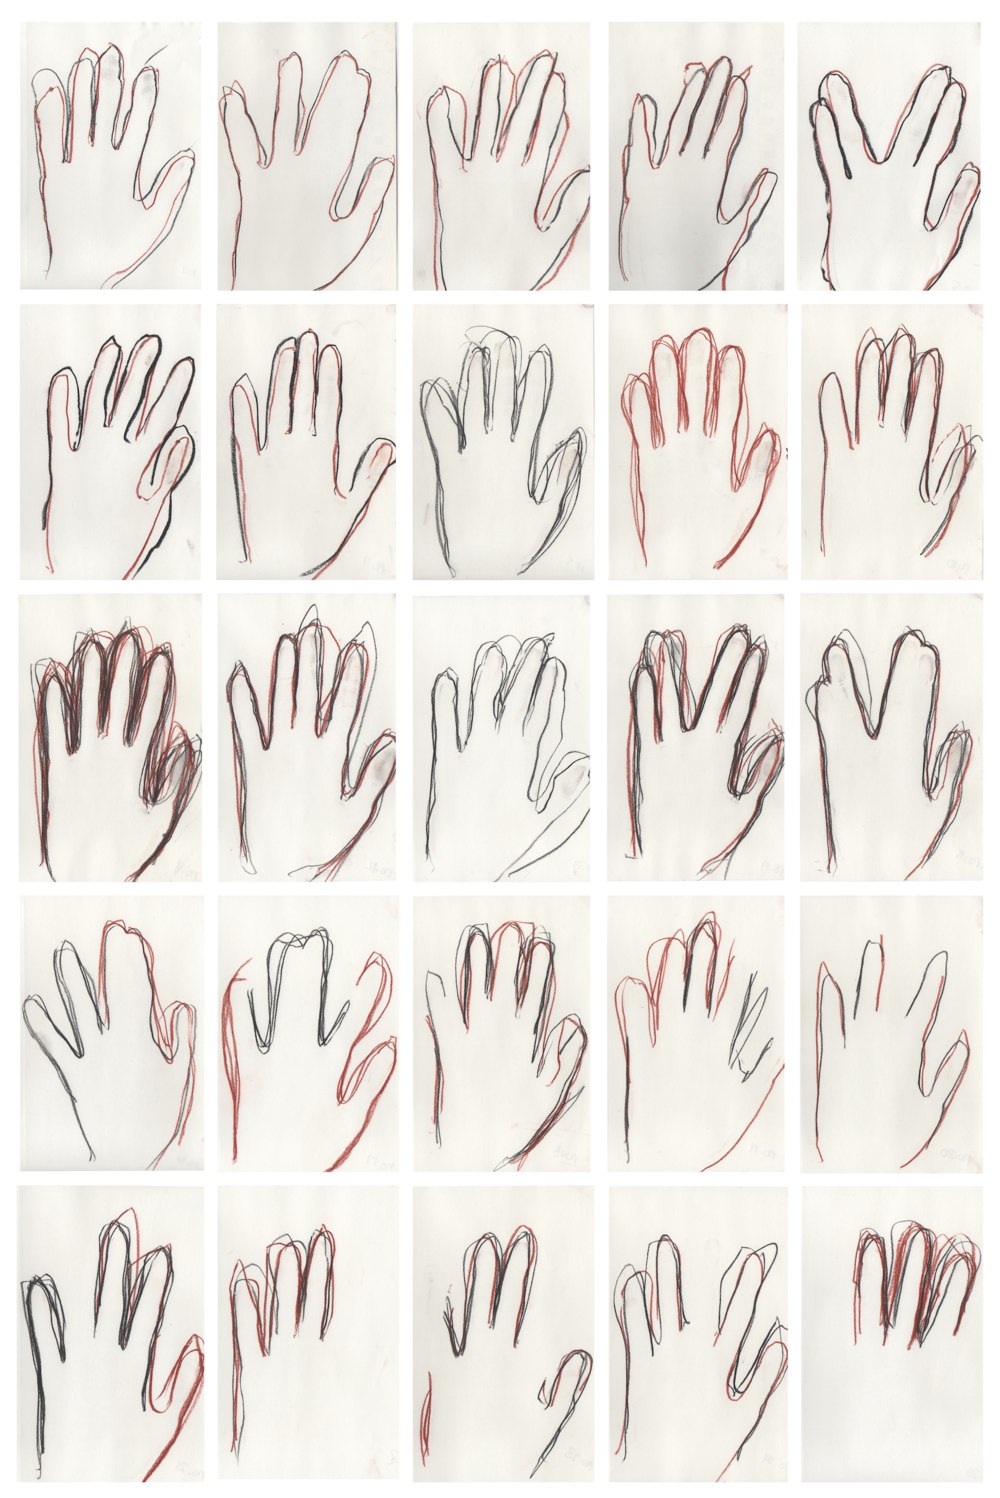 """A series of twenty-five line drawings tracing the hand. A study of the renewed romance we associate with """"the hand"""" in the face of automation and modern craft. A study of the utilitarian folklore of """"the hand"""" as the key to survival. A study of the importance of """"the hand"""" to the human laborer. In the beginning of the series, the drawings are """"celebrating"""" the wholeness of the hand. As the series progresses, the drawings get more complicated, the hand takes different configurations, and pieces of the hand disappear. In addition to exploring the future utilitarian importance of our hands, this series hopes to invoke a conversation about individuals with missing fingers and hands or lost of dexterity due to work related injuries. How does disability impact an individuals' employment status? If drawing no. 1 is most important and drawing no. 25 is least important, this series features the hand as an omnipotent symbol of autonomy and worker pride while examining the forgotten stories of the hand as a casualty of work."""